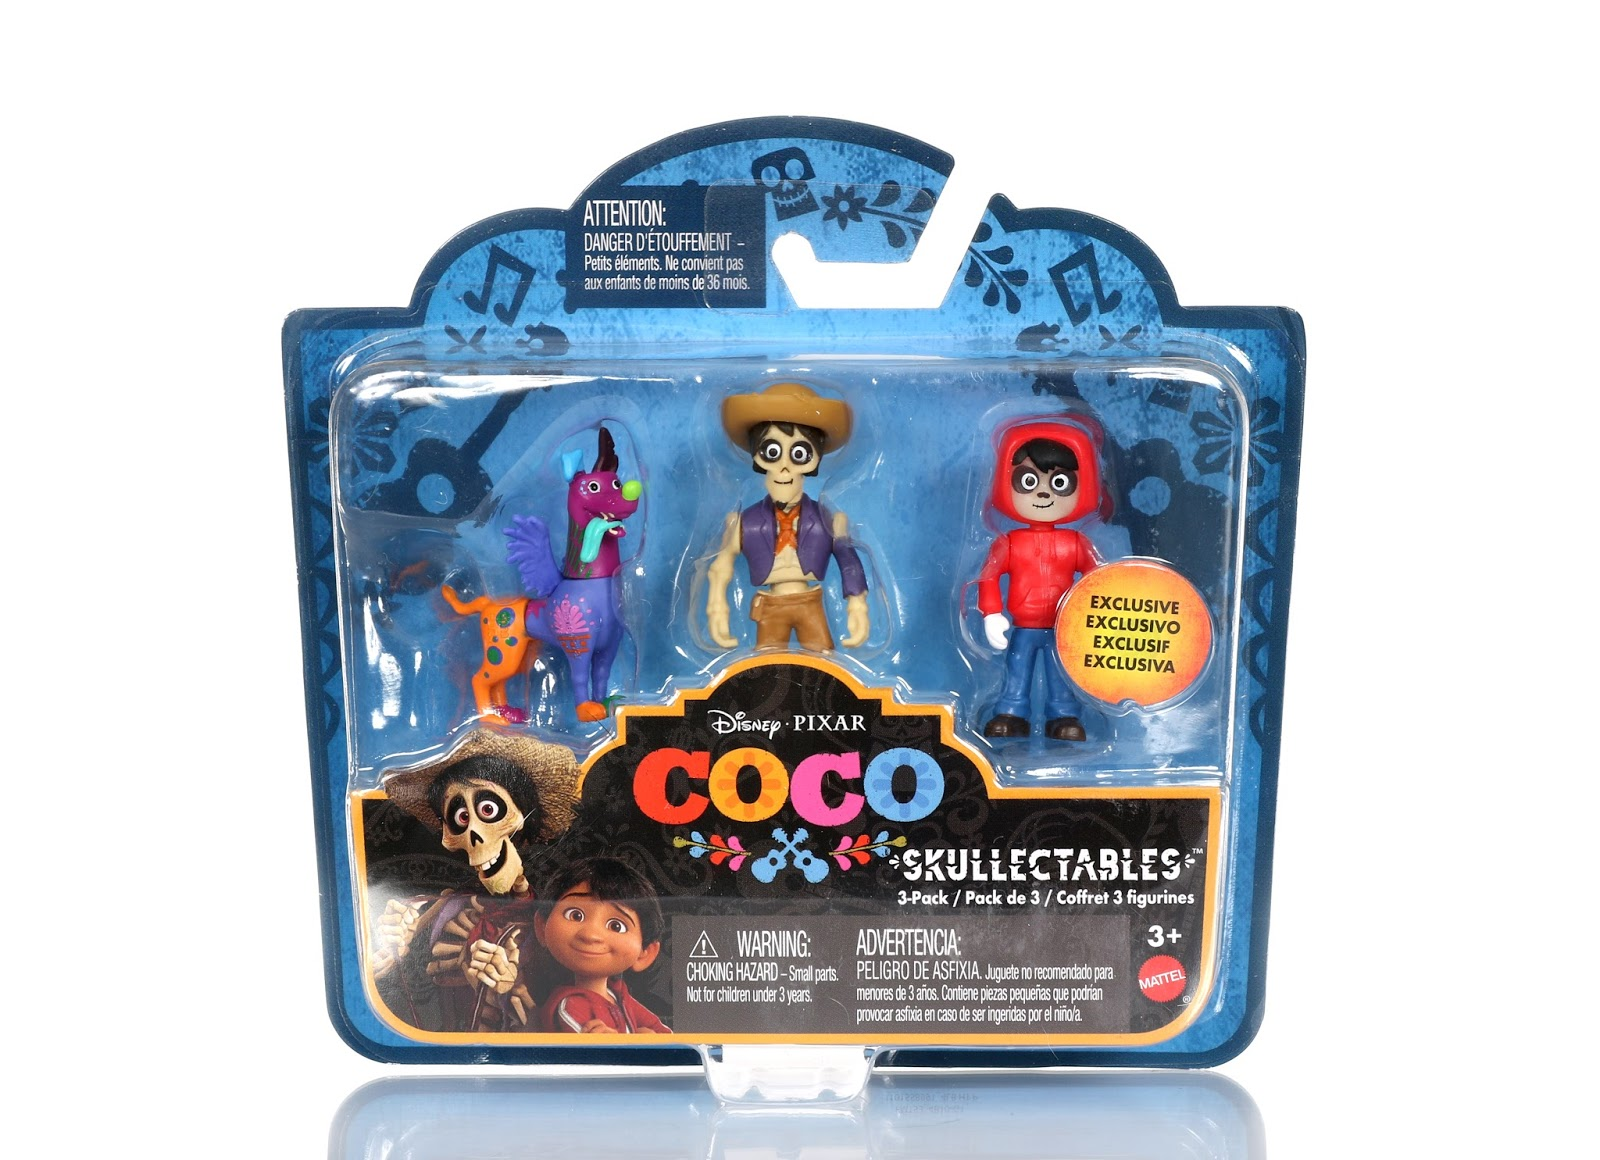 pixar coco skullectables 3-pack